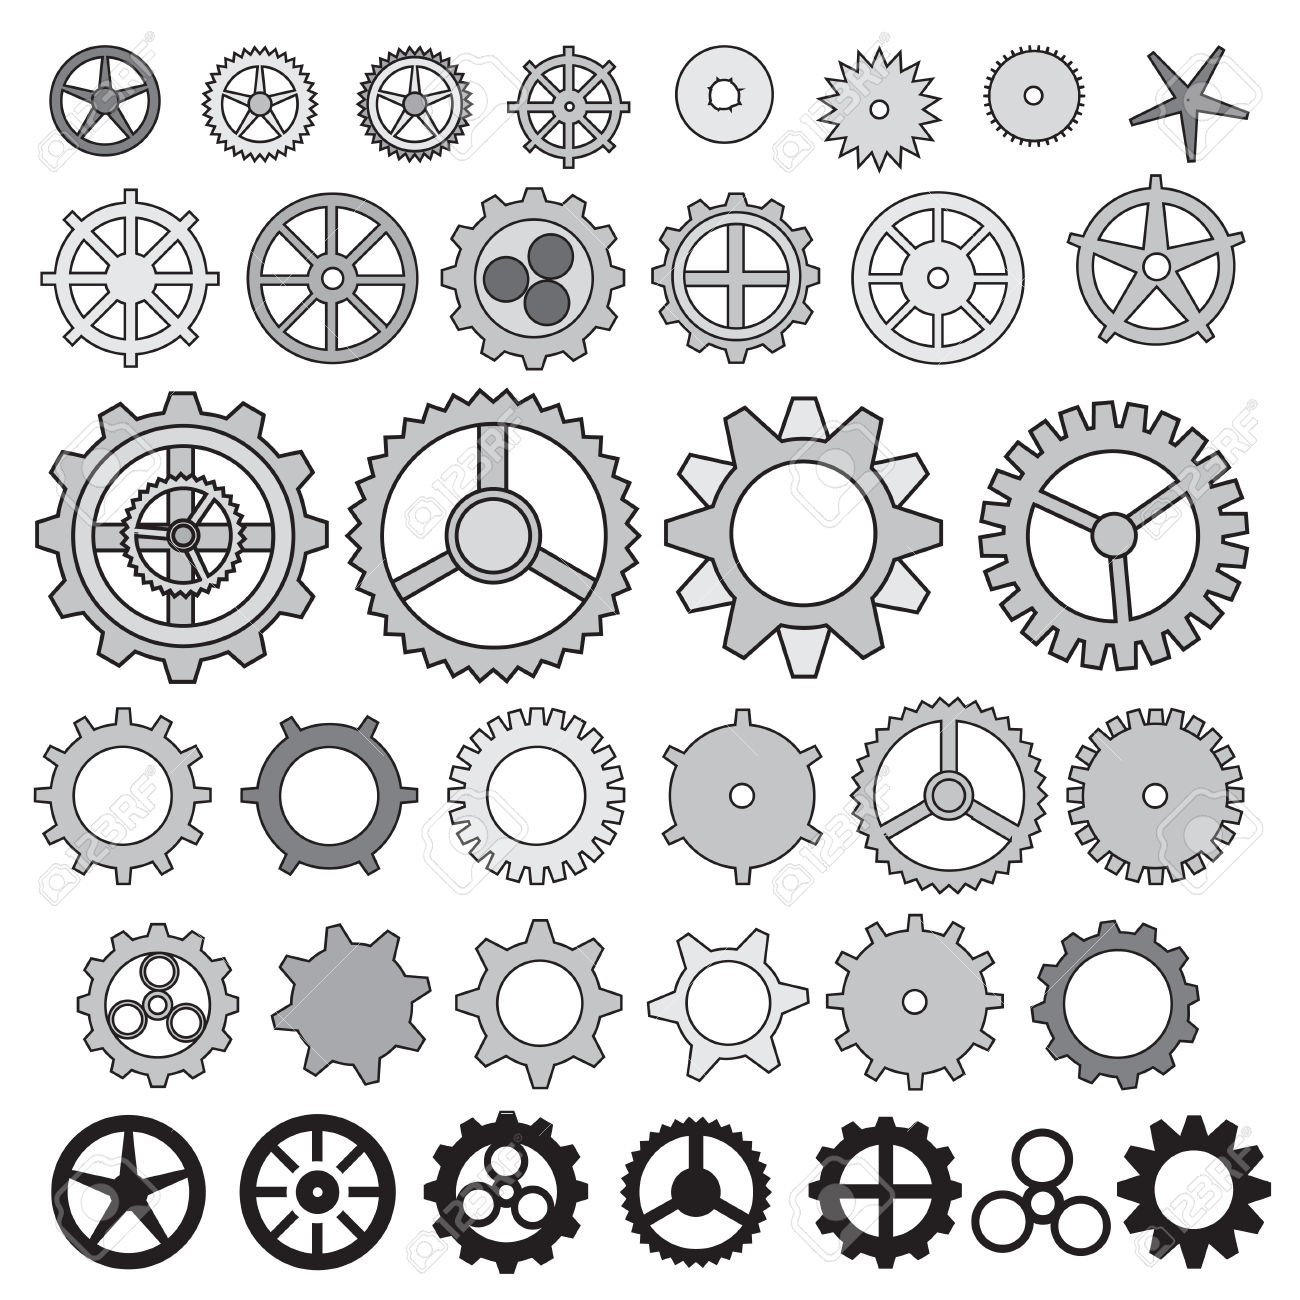 Machine clipart mechanical wheel Steampunk Gear Wheel Vector Collection